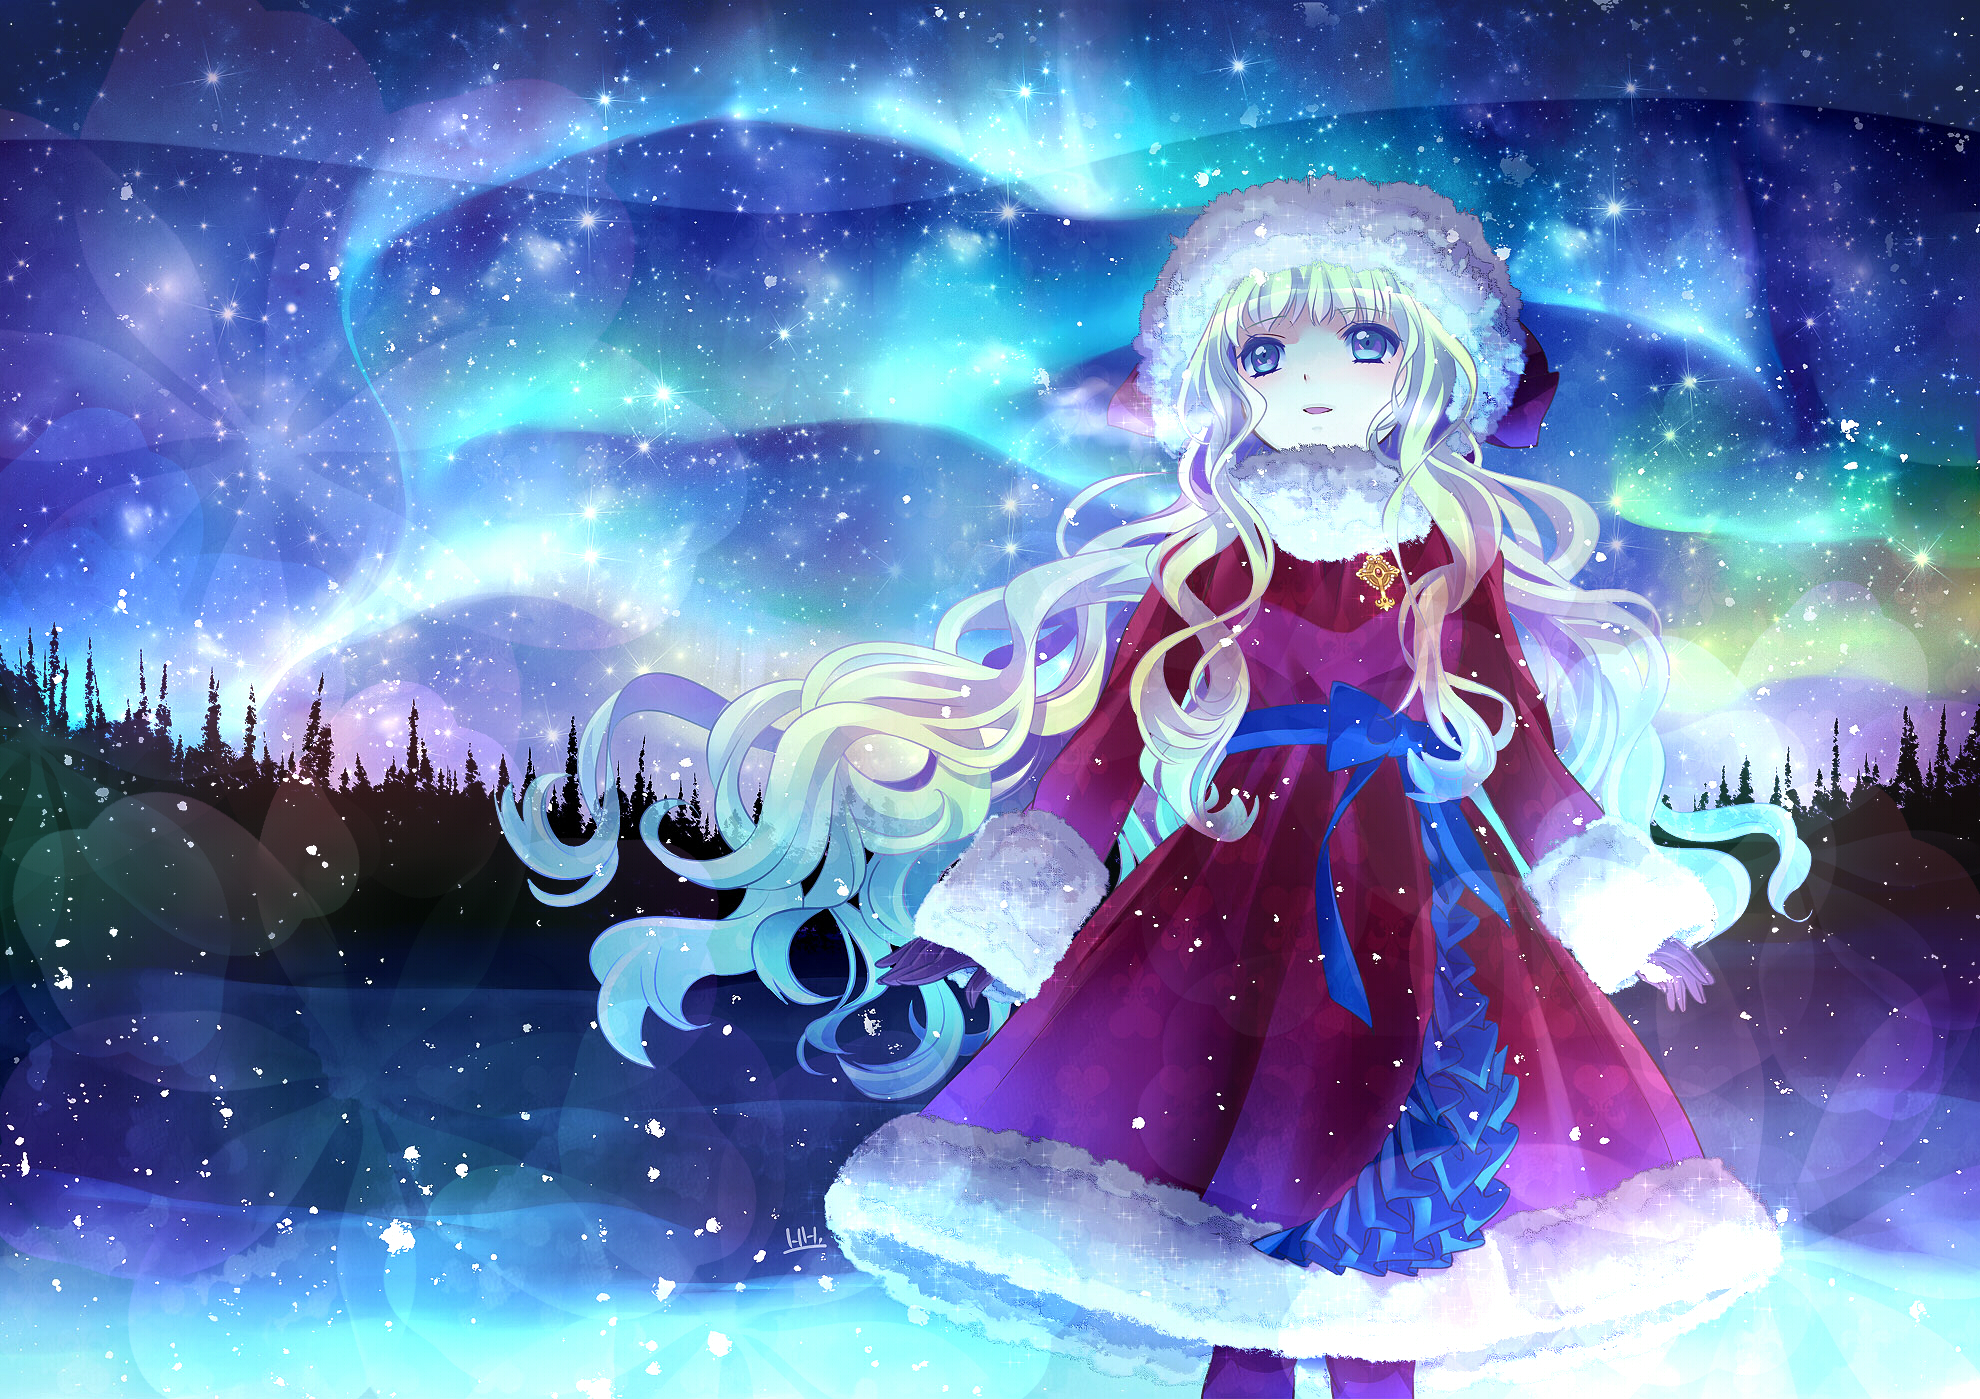 https://kazasou.files.wordpress.com/2014/12/konachan-com-175051-blonde_hair-blue_eyes-hat-hira_taira-jpeg_artifacts-original-santa_costume-santa_hat-stars.jpg